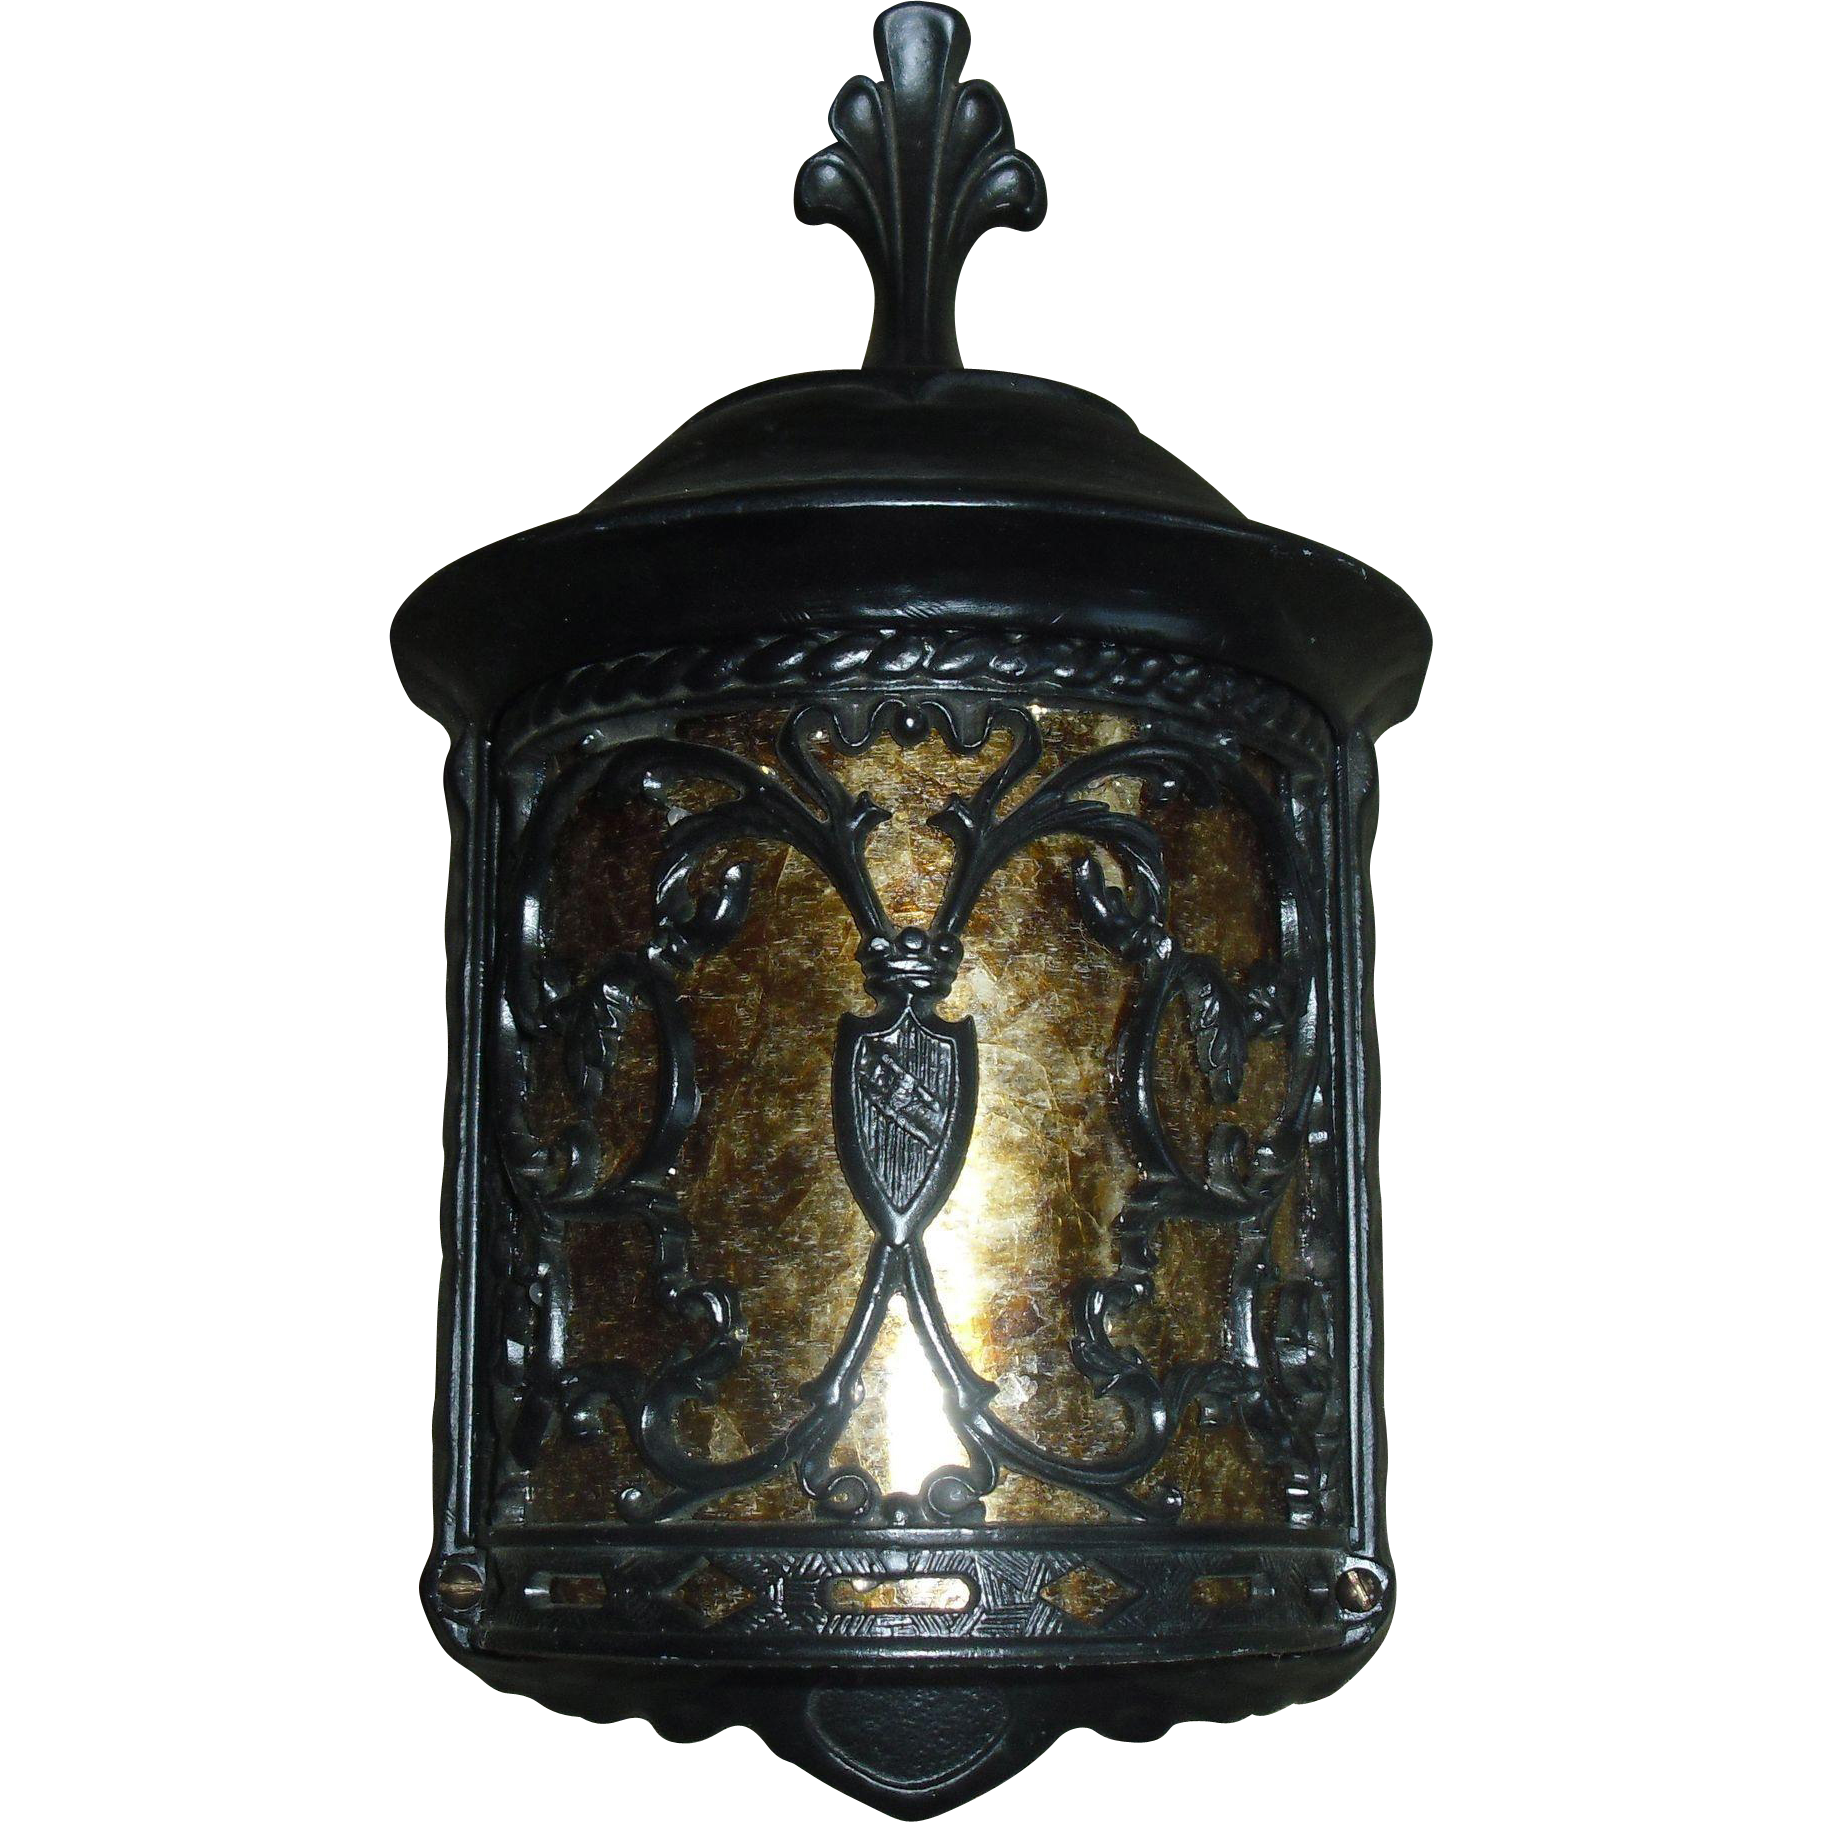 Spanish Revival Porch Light Fixtures with Mica Panels - 4 available